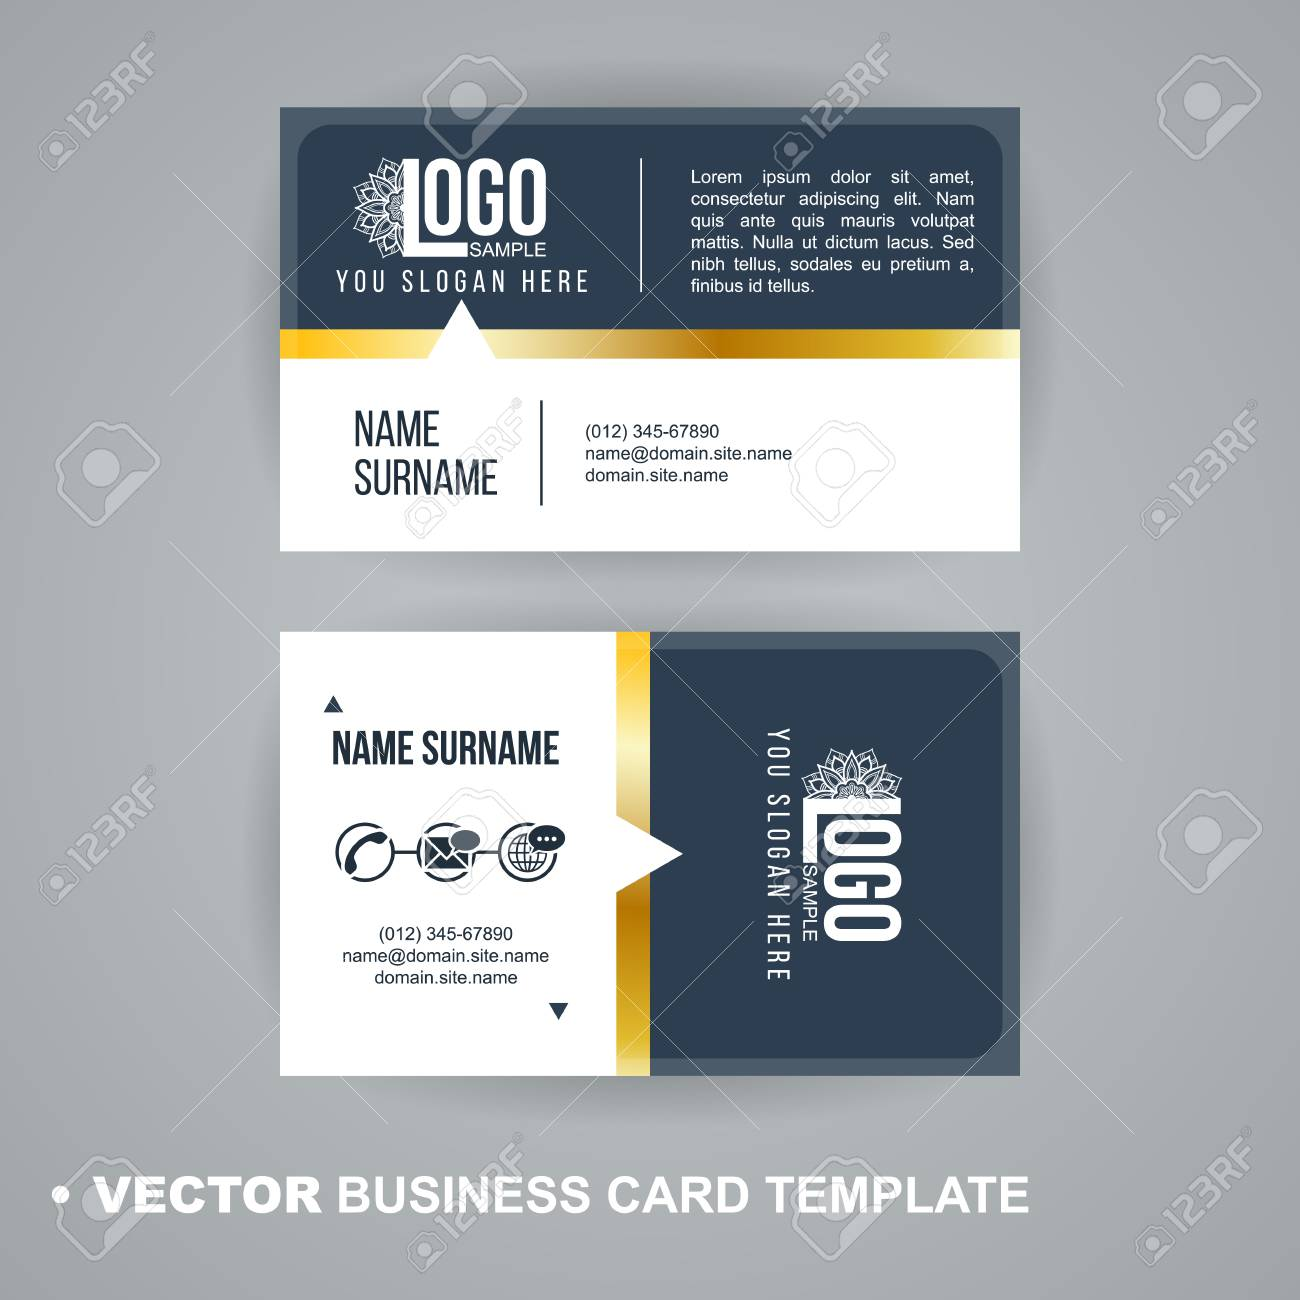 vecrot business card template modern abstract luxury style for